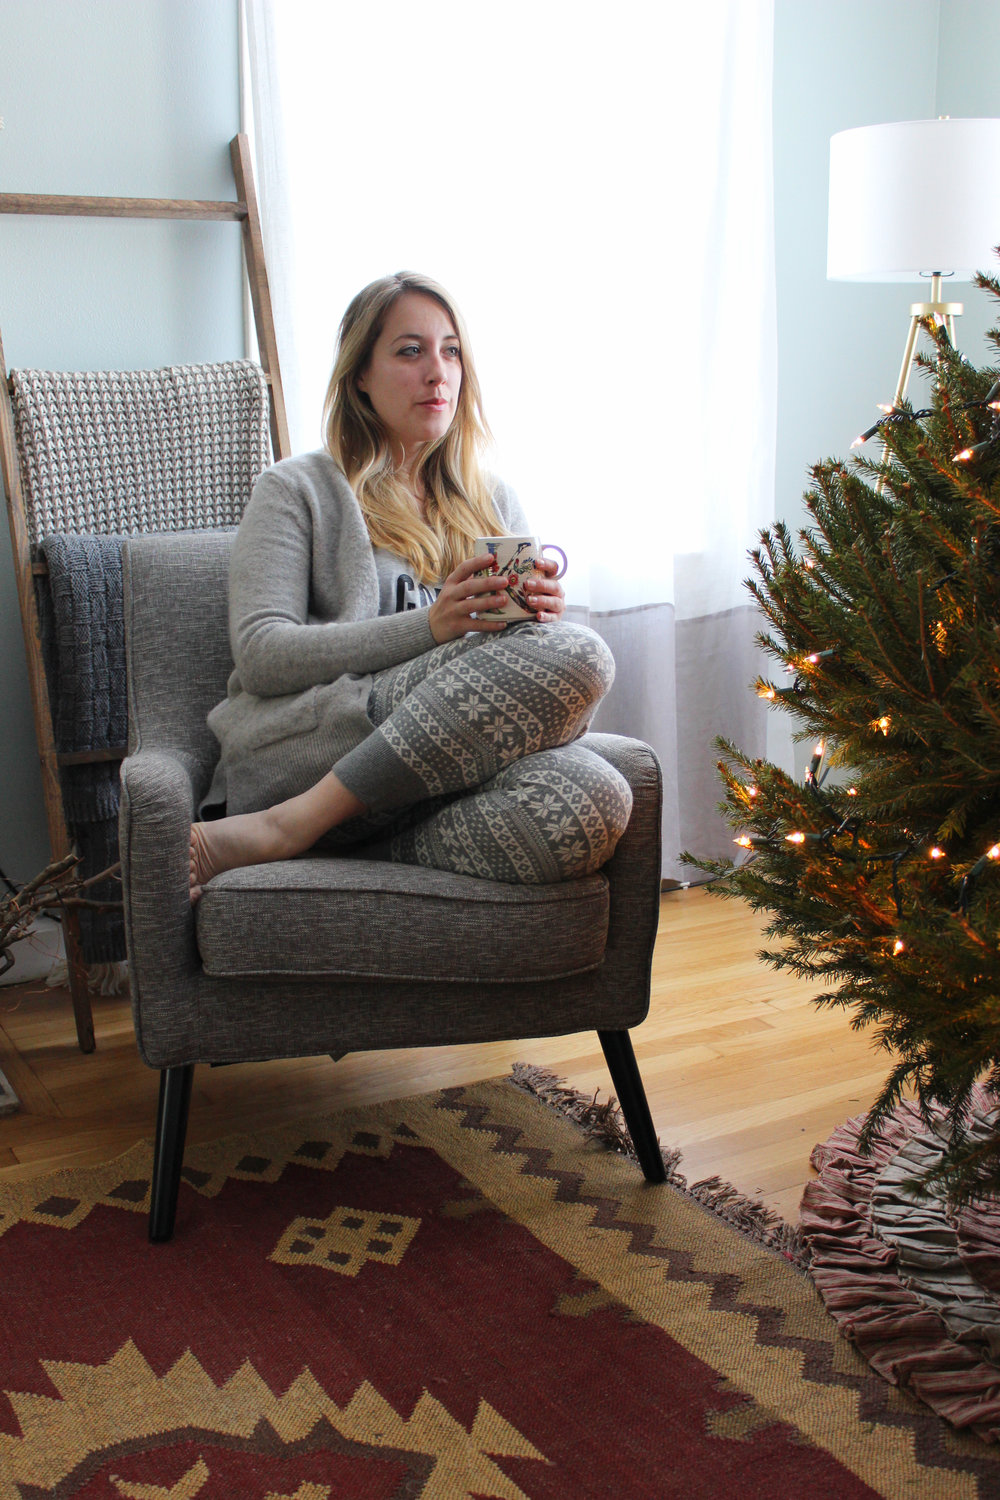 How to Practice Self-Care During the Holiday Season - Wear She Blossoms